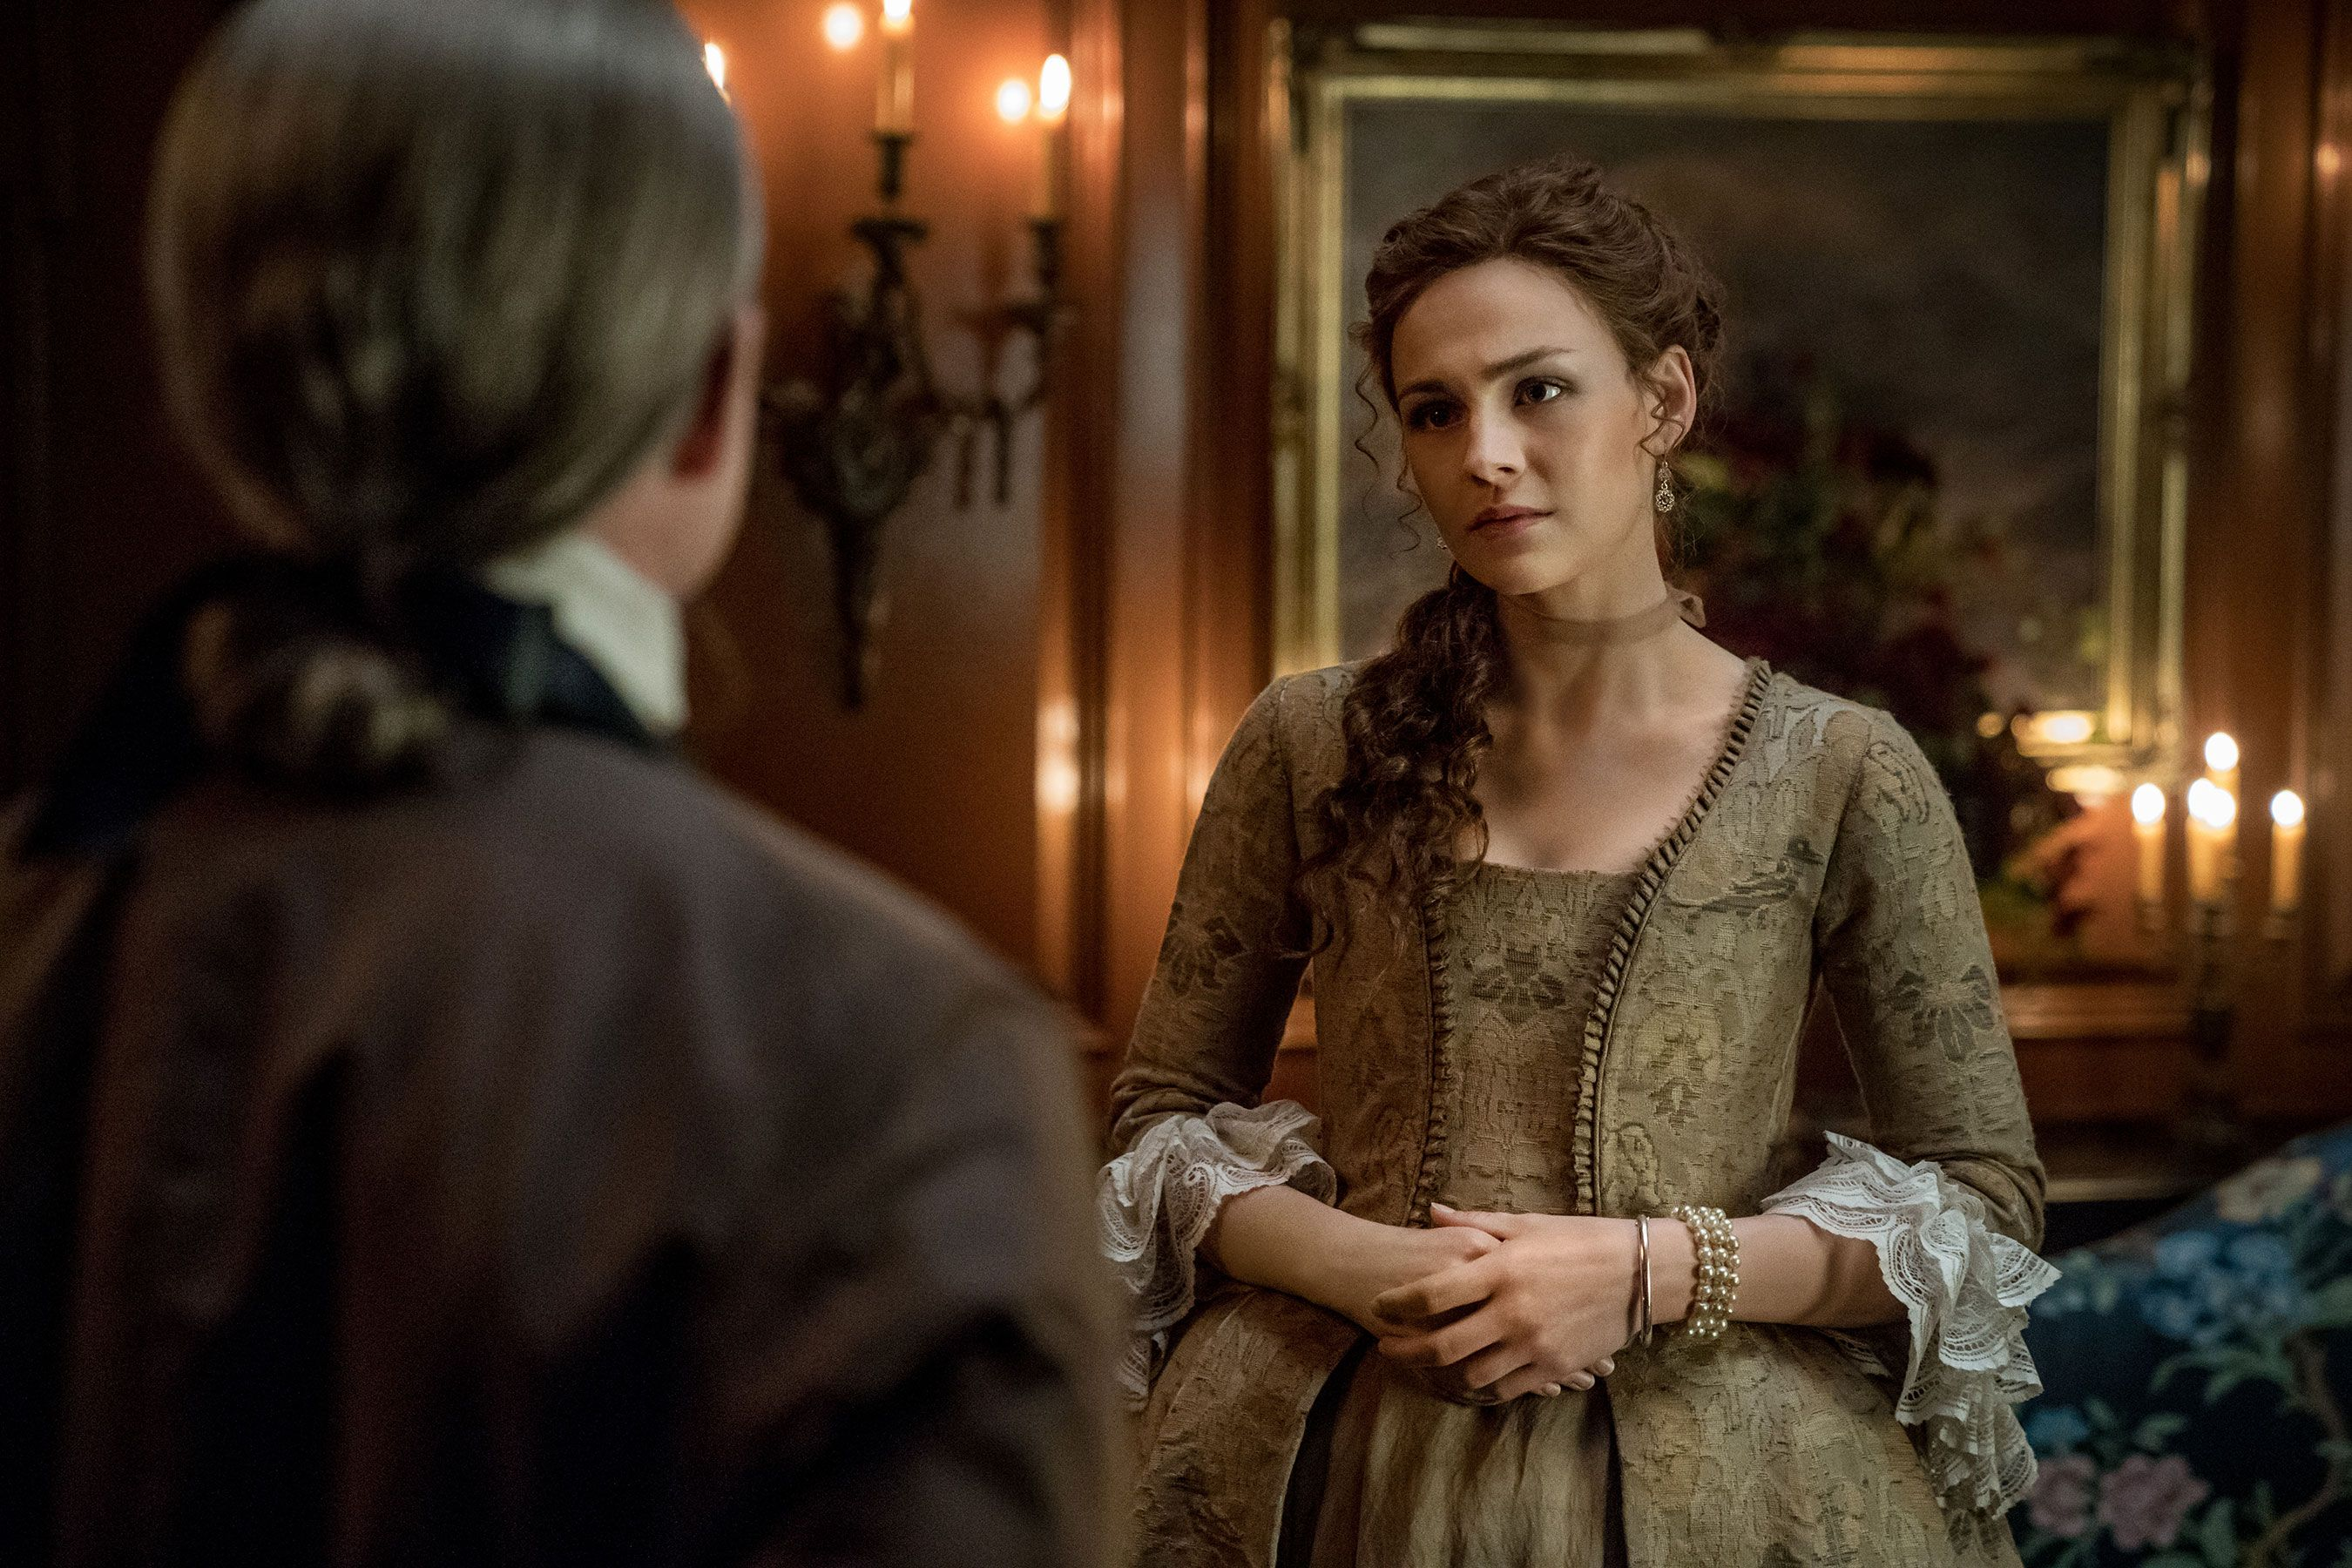 Look who's showing! See a pregnant Bree in 'Outlander